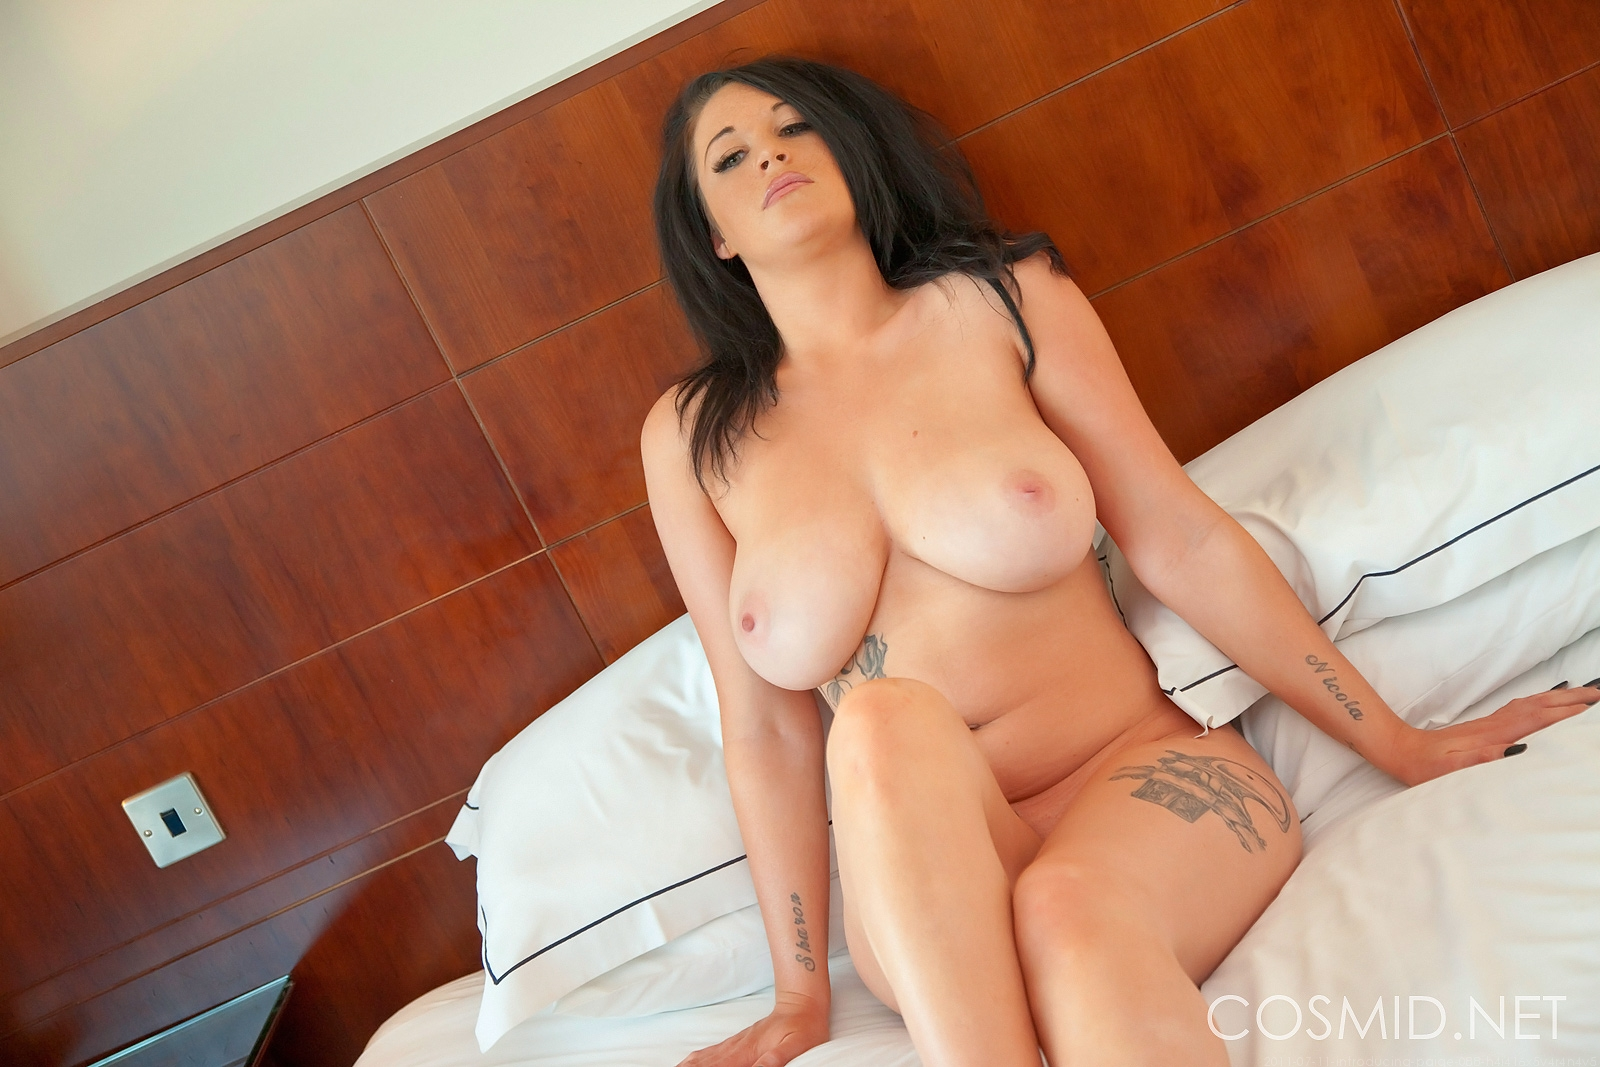 Lesbian amateur housewife licking porn pictures